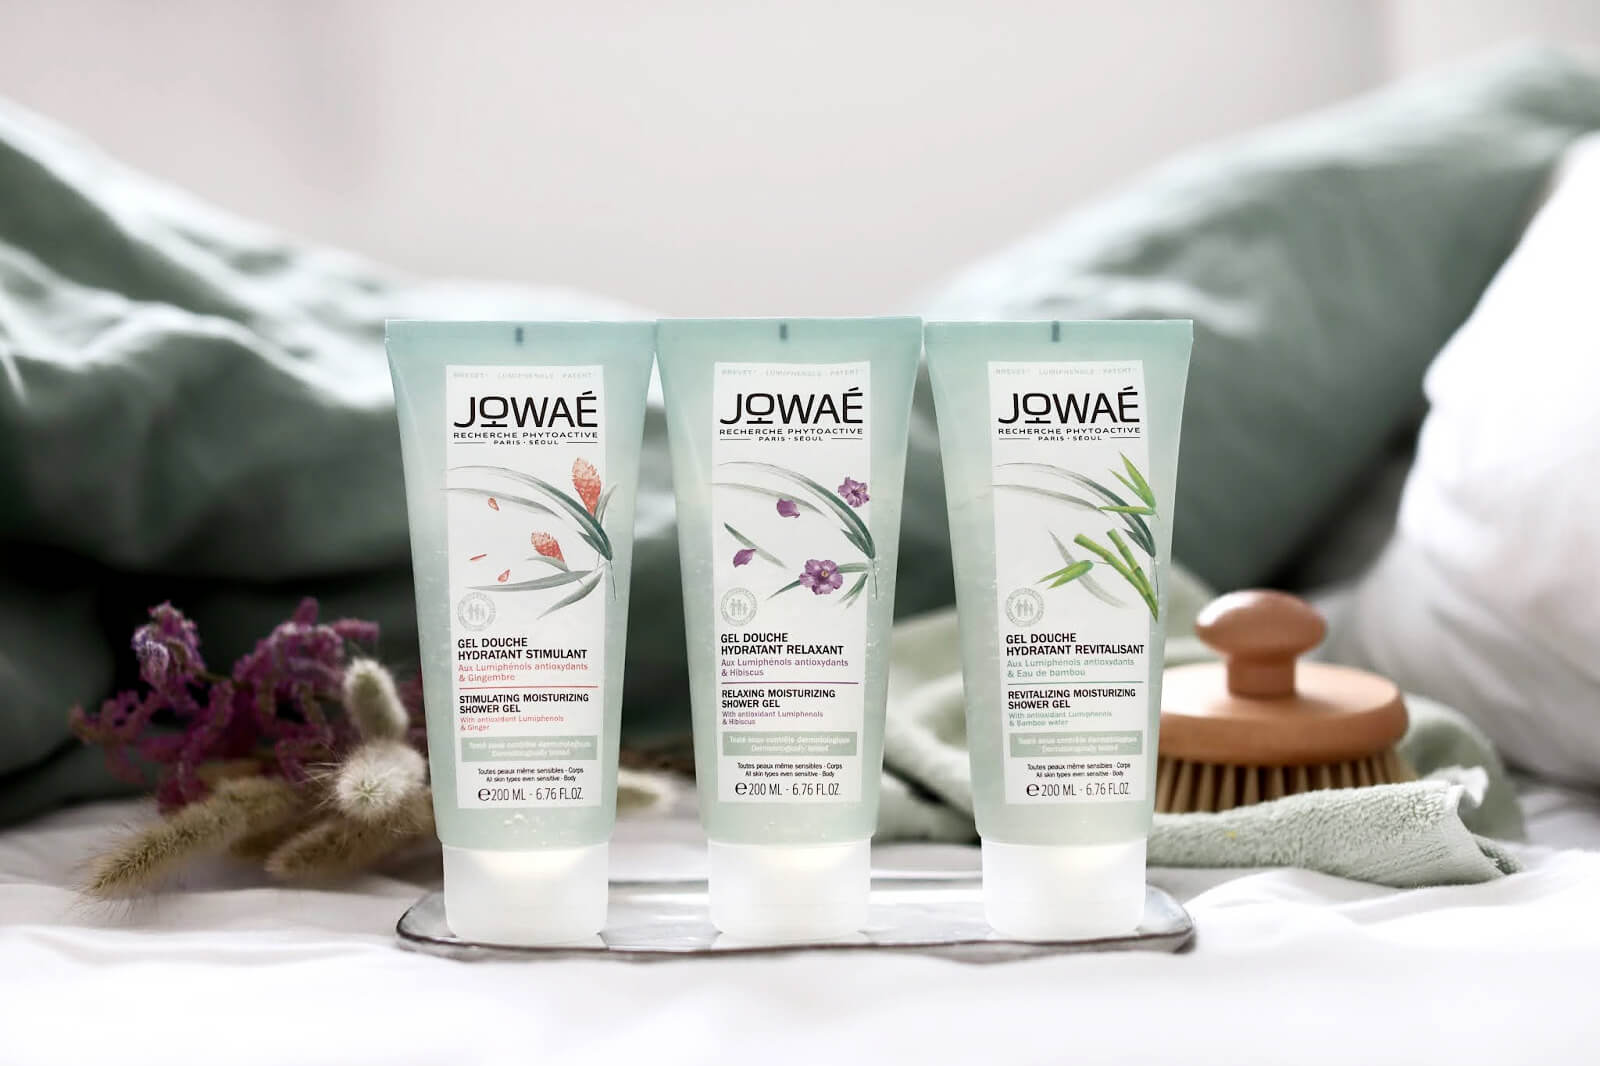 Jowae Gel Douche composition